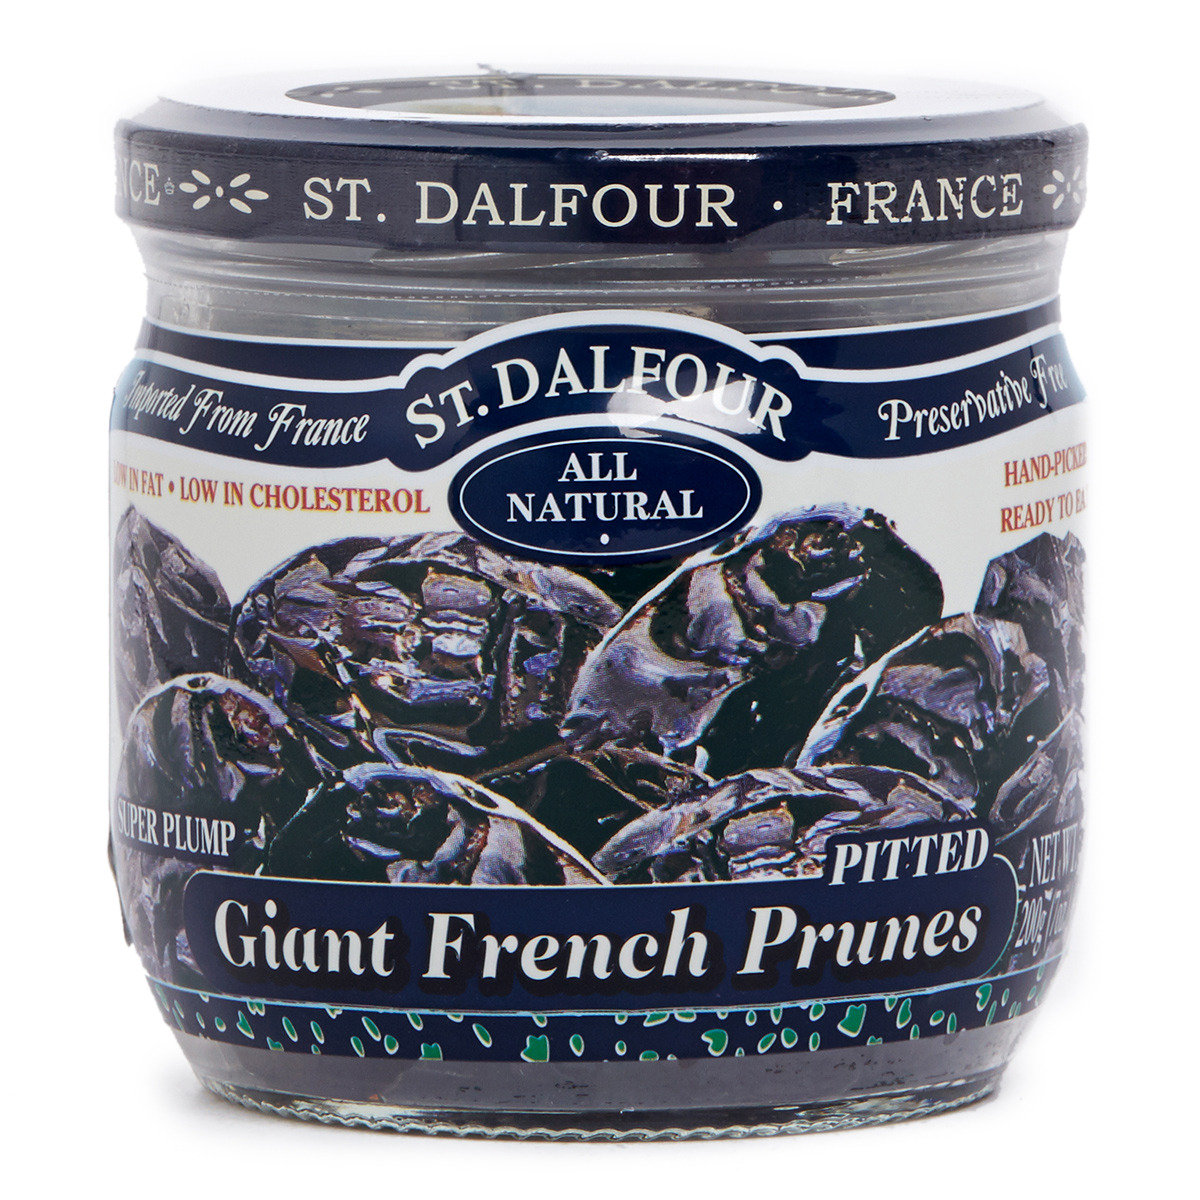 Giant French Prunes